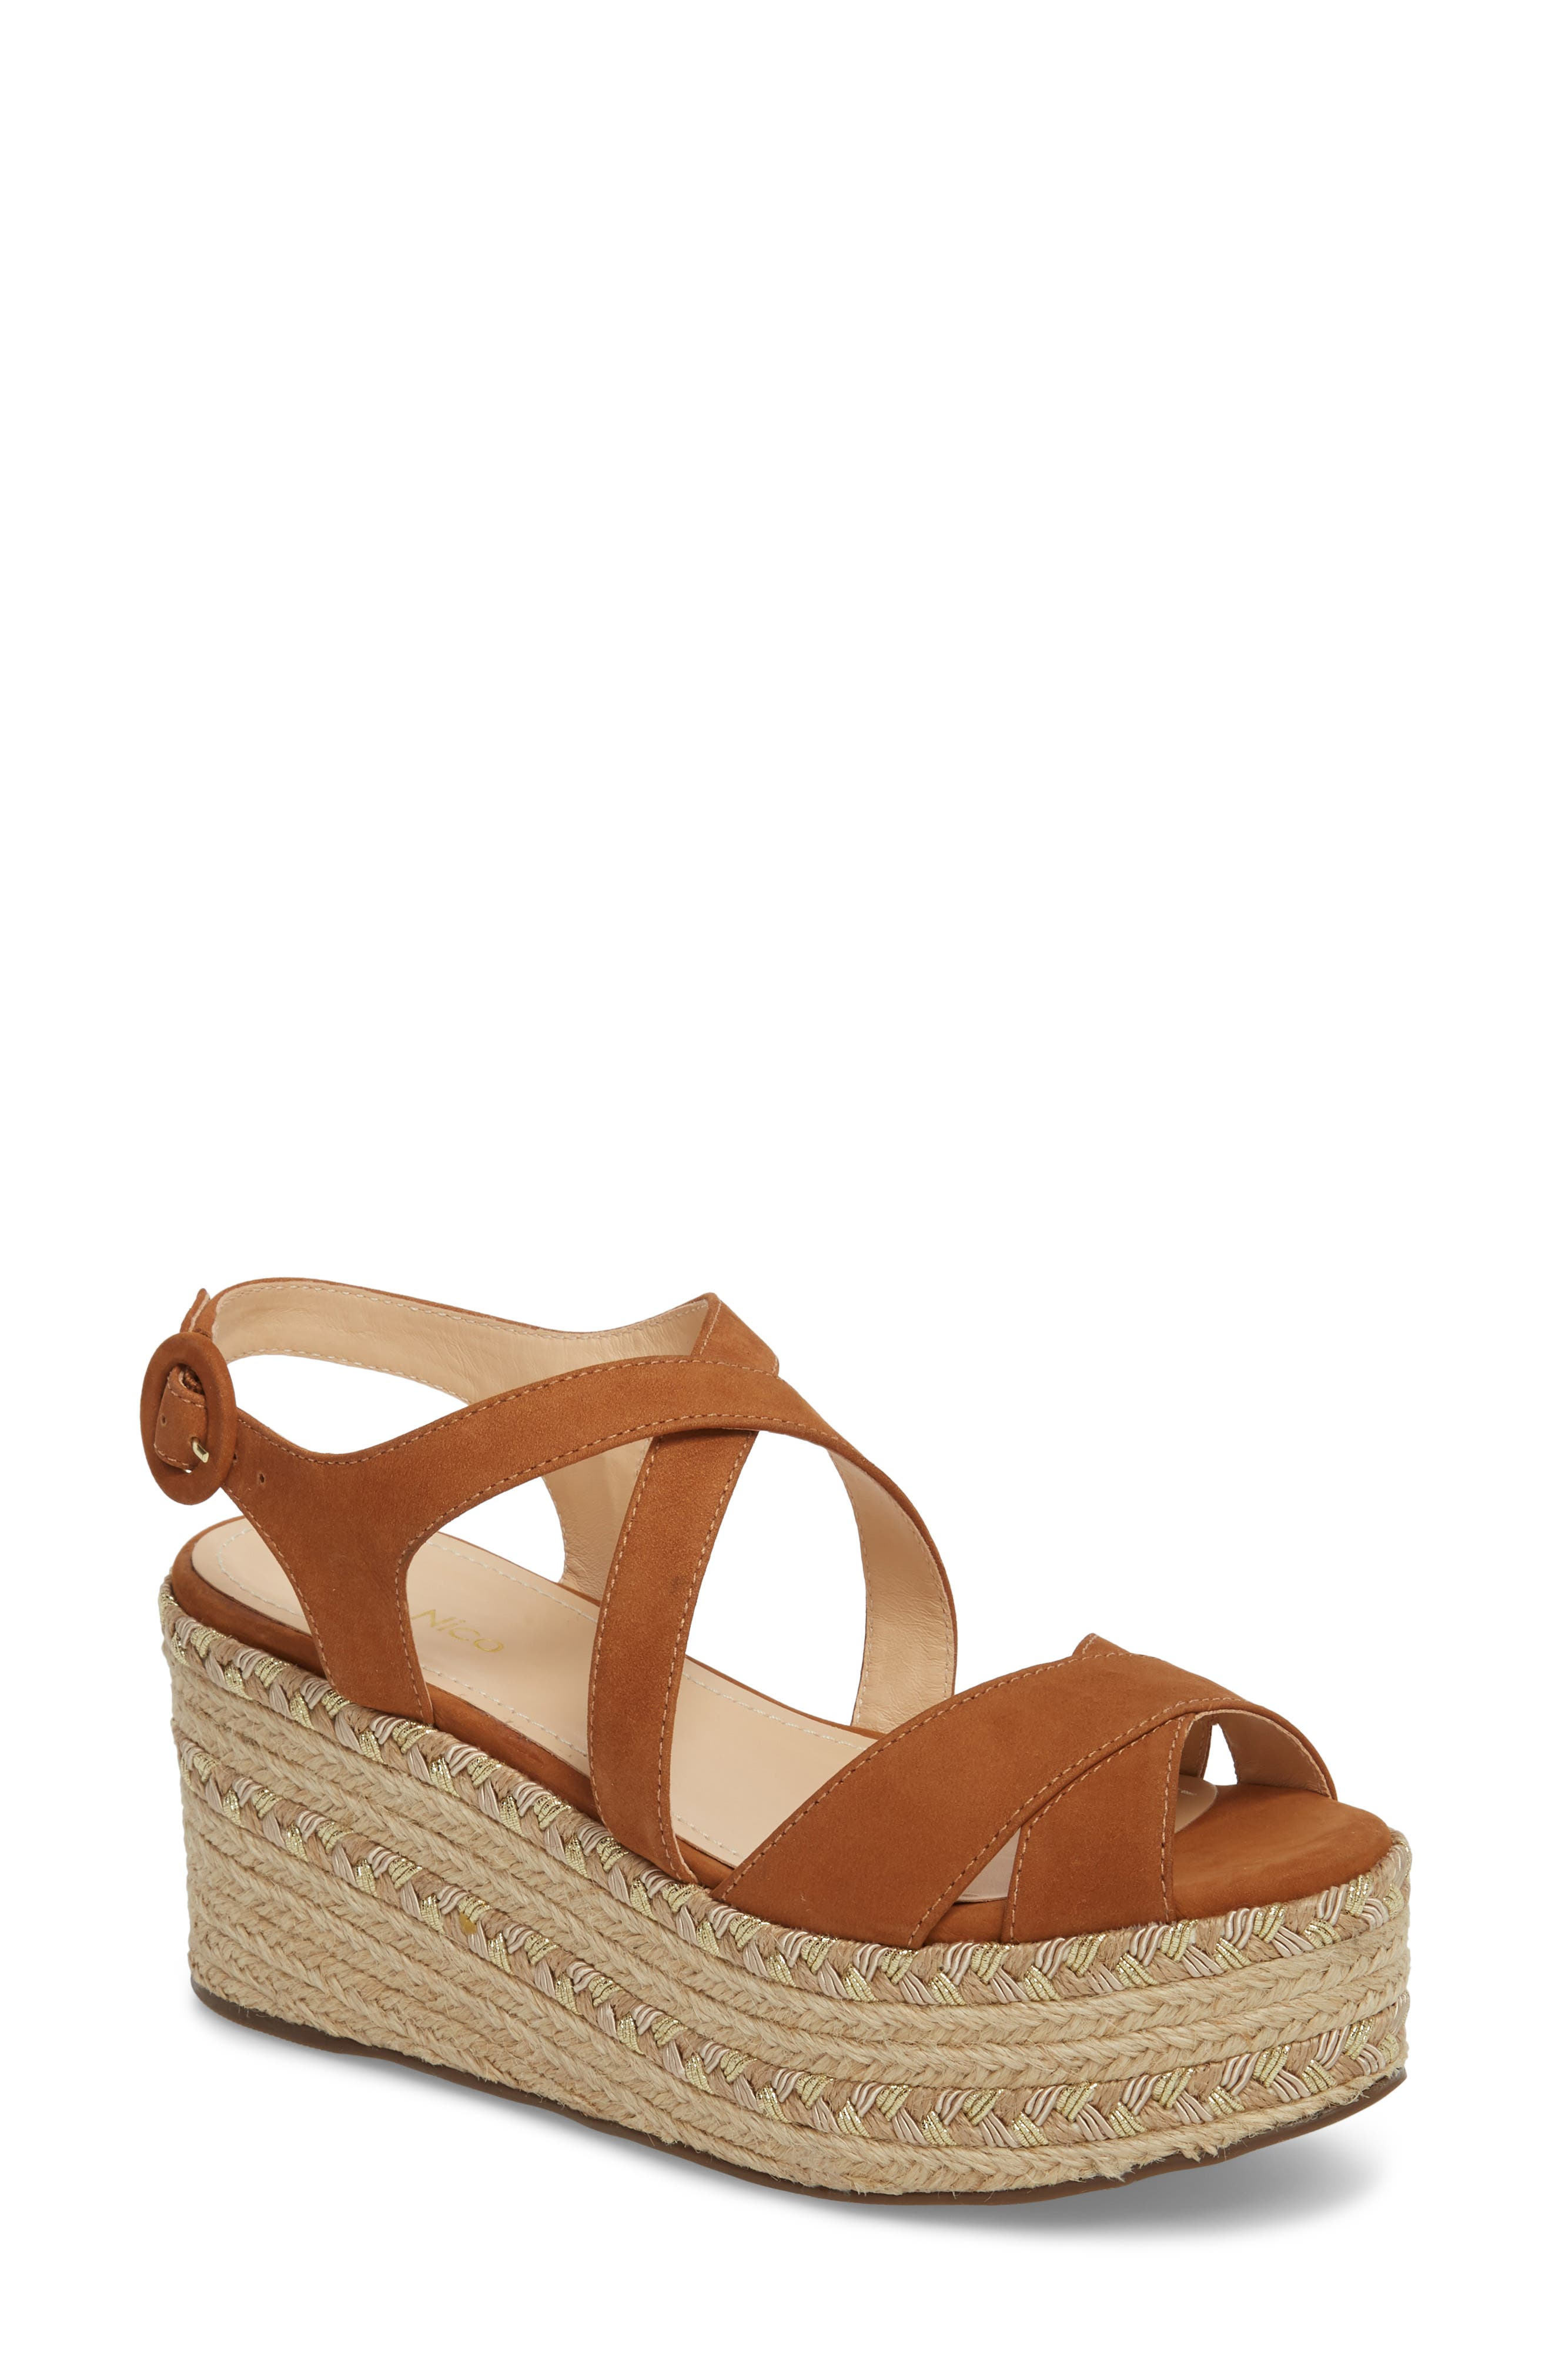 KLUB NICO,                             Vikki Espadrille Platform Sandal,                             Main thumbnail 1, color,                             TAN LEATHER